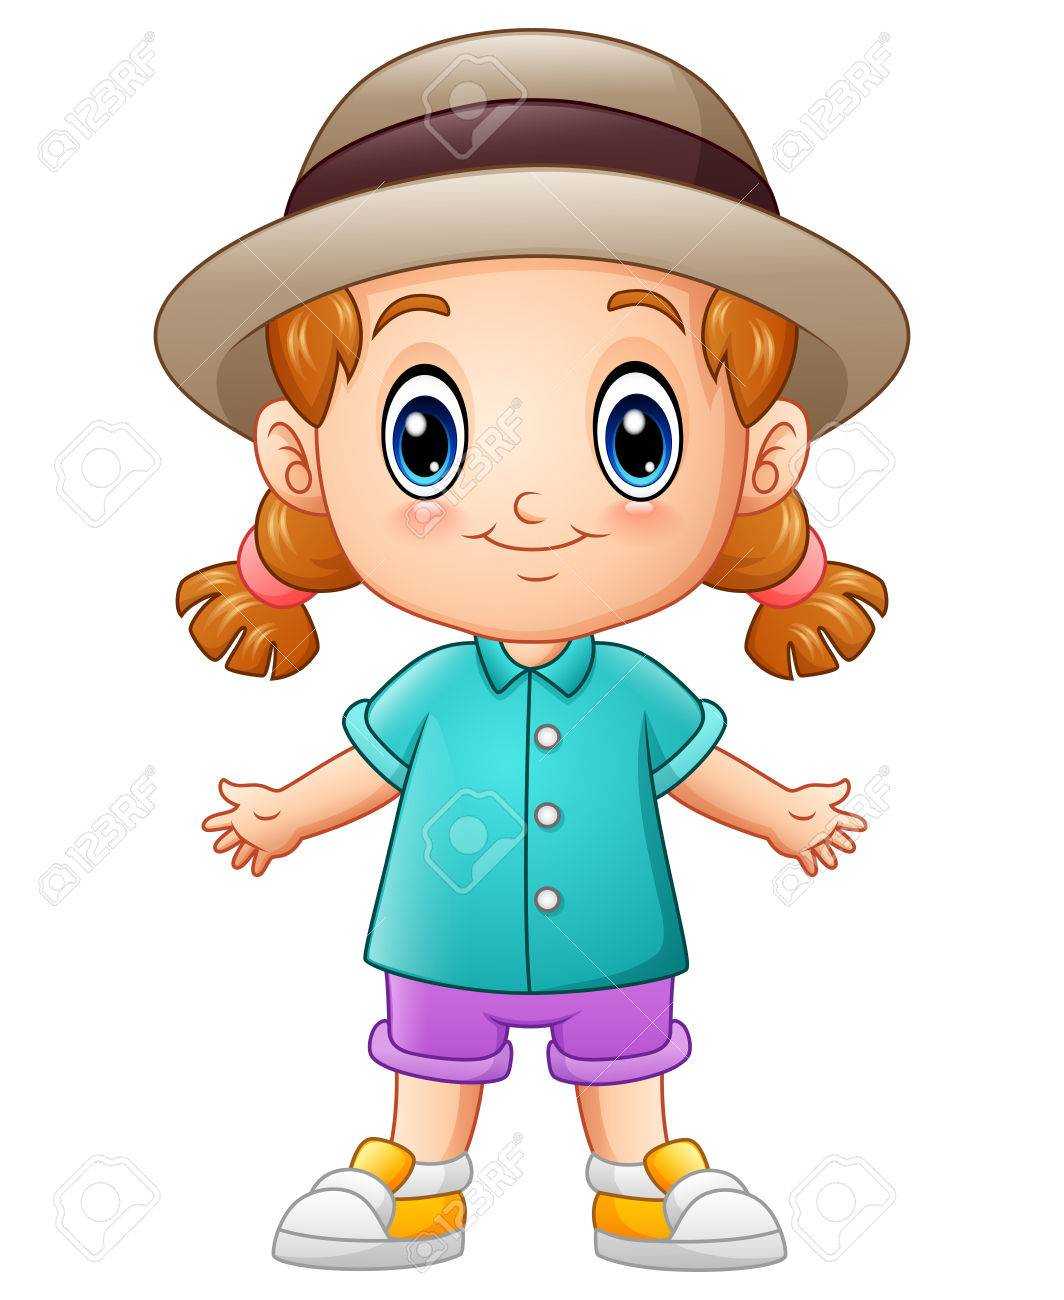 d109f4e5117 Vector illustration of Cute cartoon little girl in a hat Stock Vector -  82746869